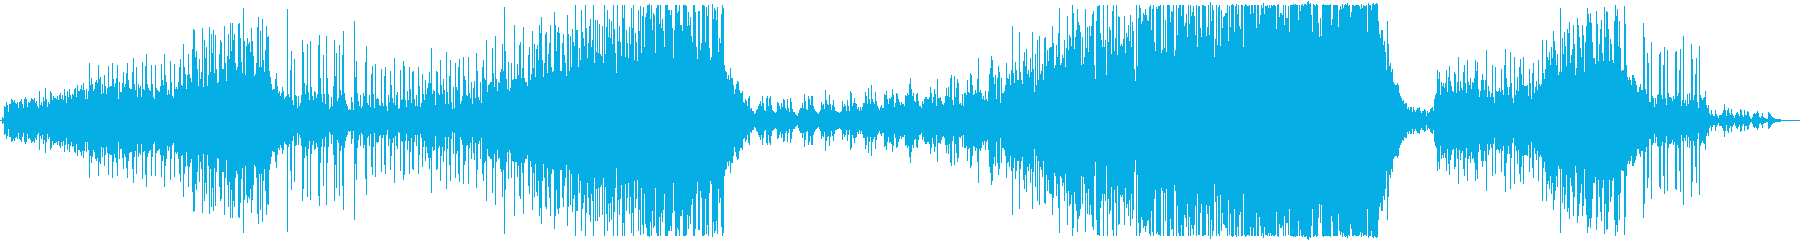 Dangling Latin's reproduced waveform